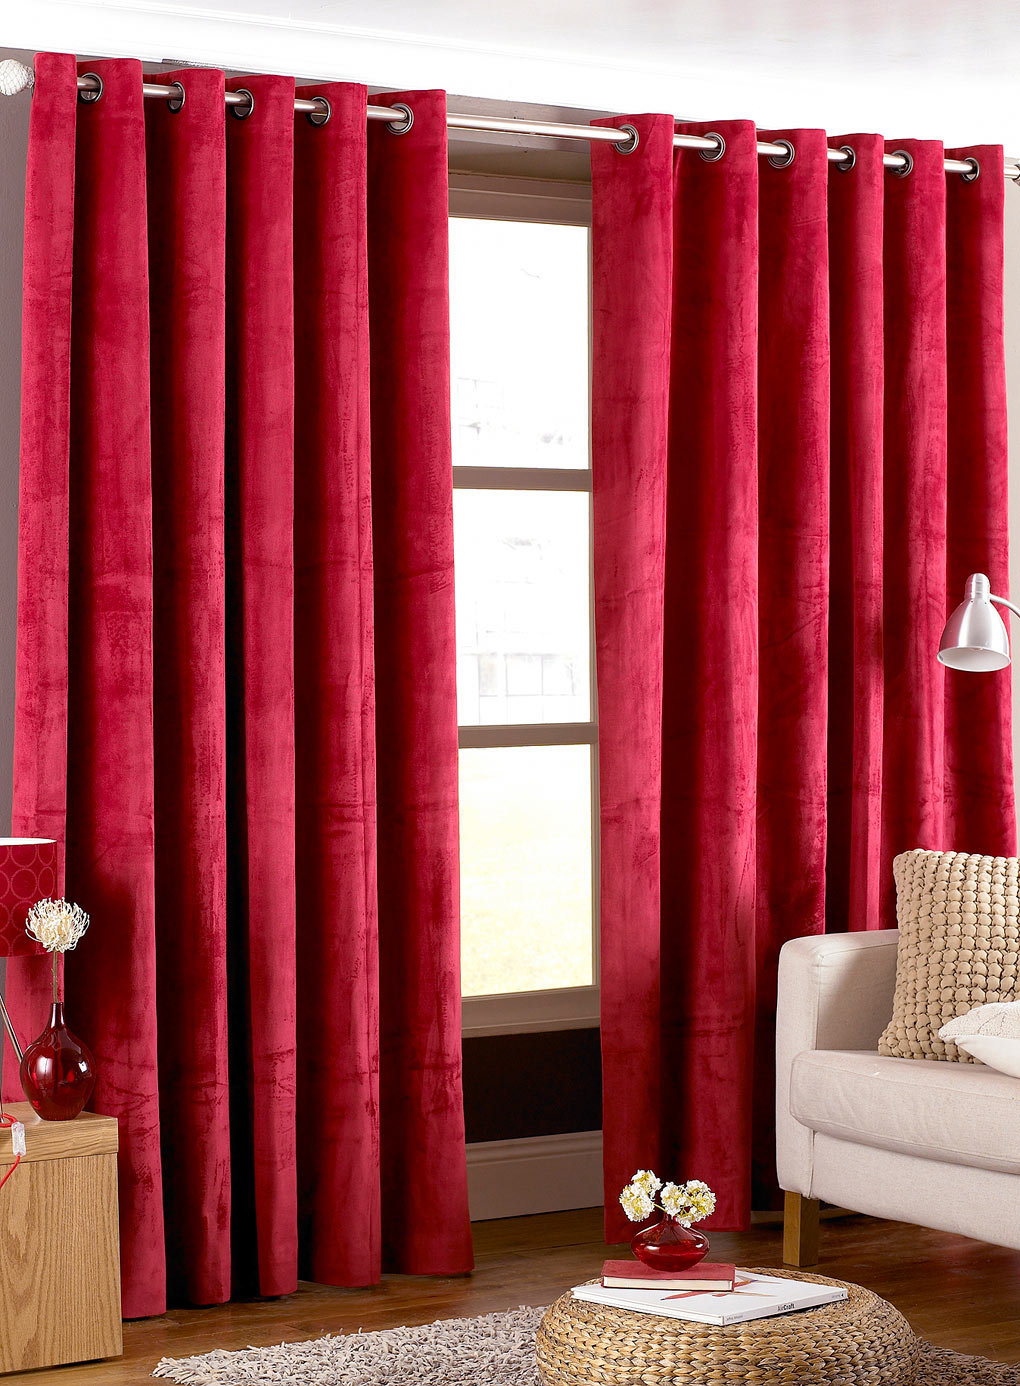 Latest-red-and-gray-striped-curtains 20 Hottest Curtain Designs for 2017